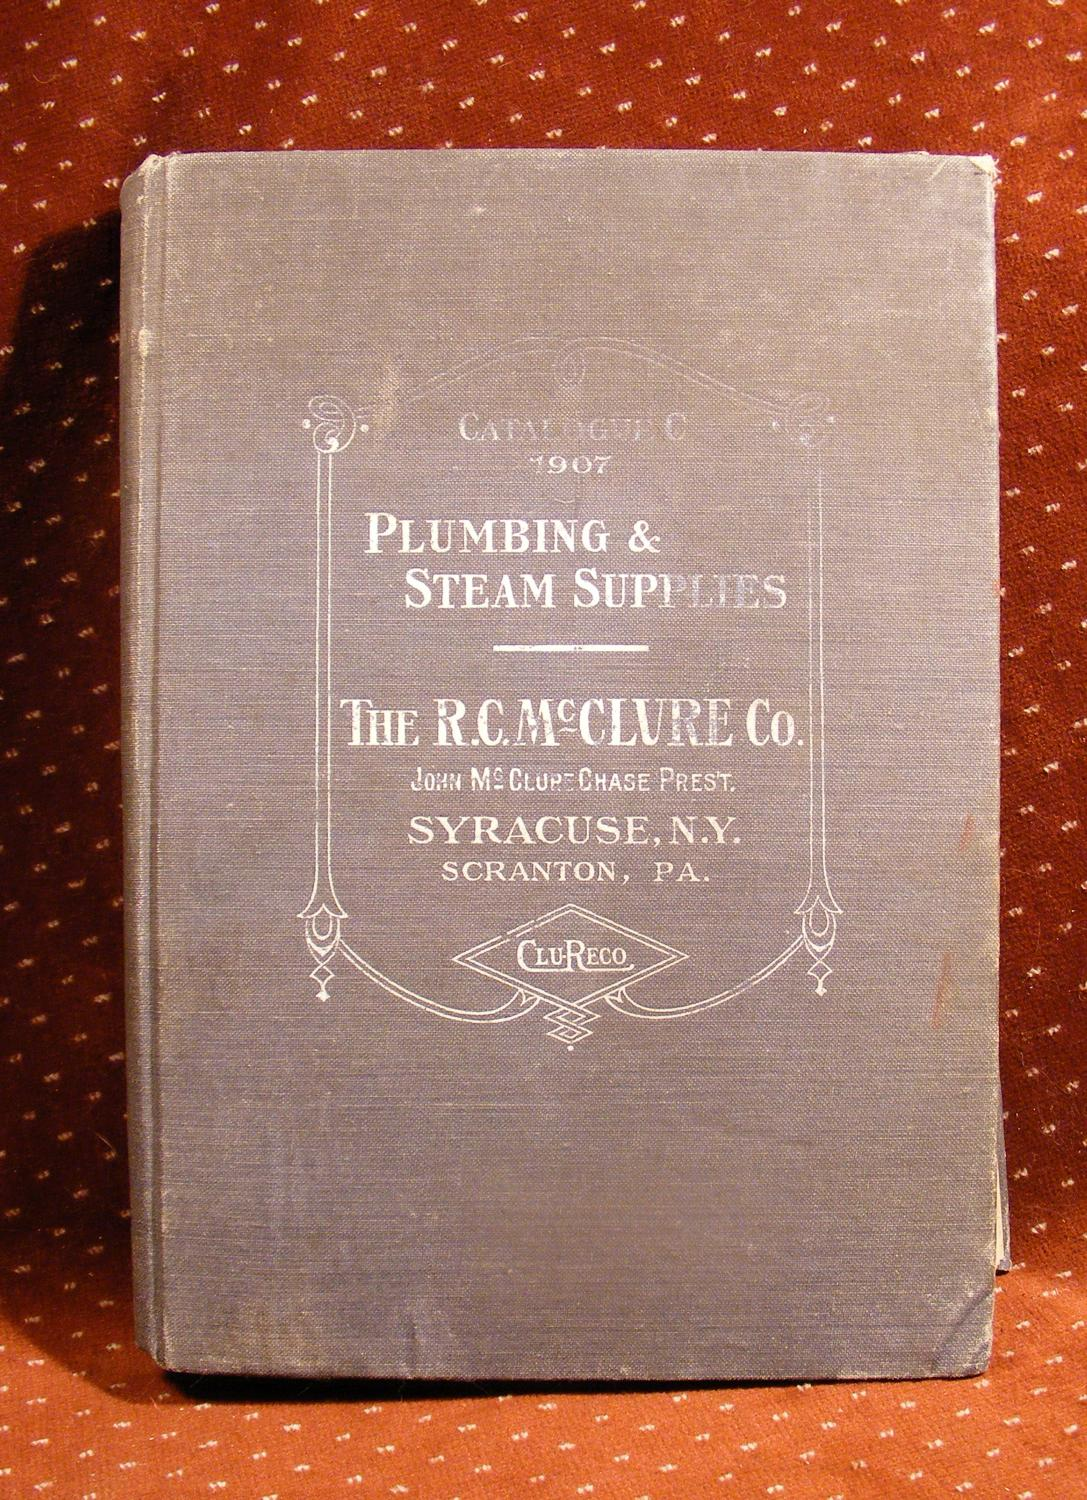 Catalogue C THE R. C. MCCLURE CO. PLUMBING SUPPLIES FIXTURES, TOOLS AND SPECIALITIES OF EVERY DESCRIPTION   [Moyen] [Couverture rigide] 10 5/8  X 7 1/2  in gray cloth with white lettering. Spine almost completely faded; faded top 20% of front cover; edges soiled: FAIR. This is one of those wonderful early 20th century trade catalogs filled with great - now antique - merchandise. As is often the case, the covers are soiled and not very attractive, but the contents are just great. 703pp of terrific illustrations of all sorts of tools and plumbing supplies and fixtures. Sinks, toilet paper holders, toilets, pipes, etc are all to be found here. Superb reference  the way it was  around 1907. [RARE]